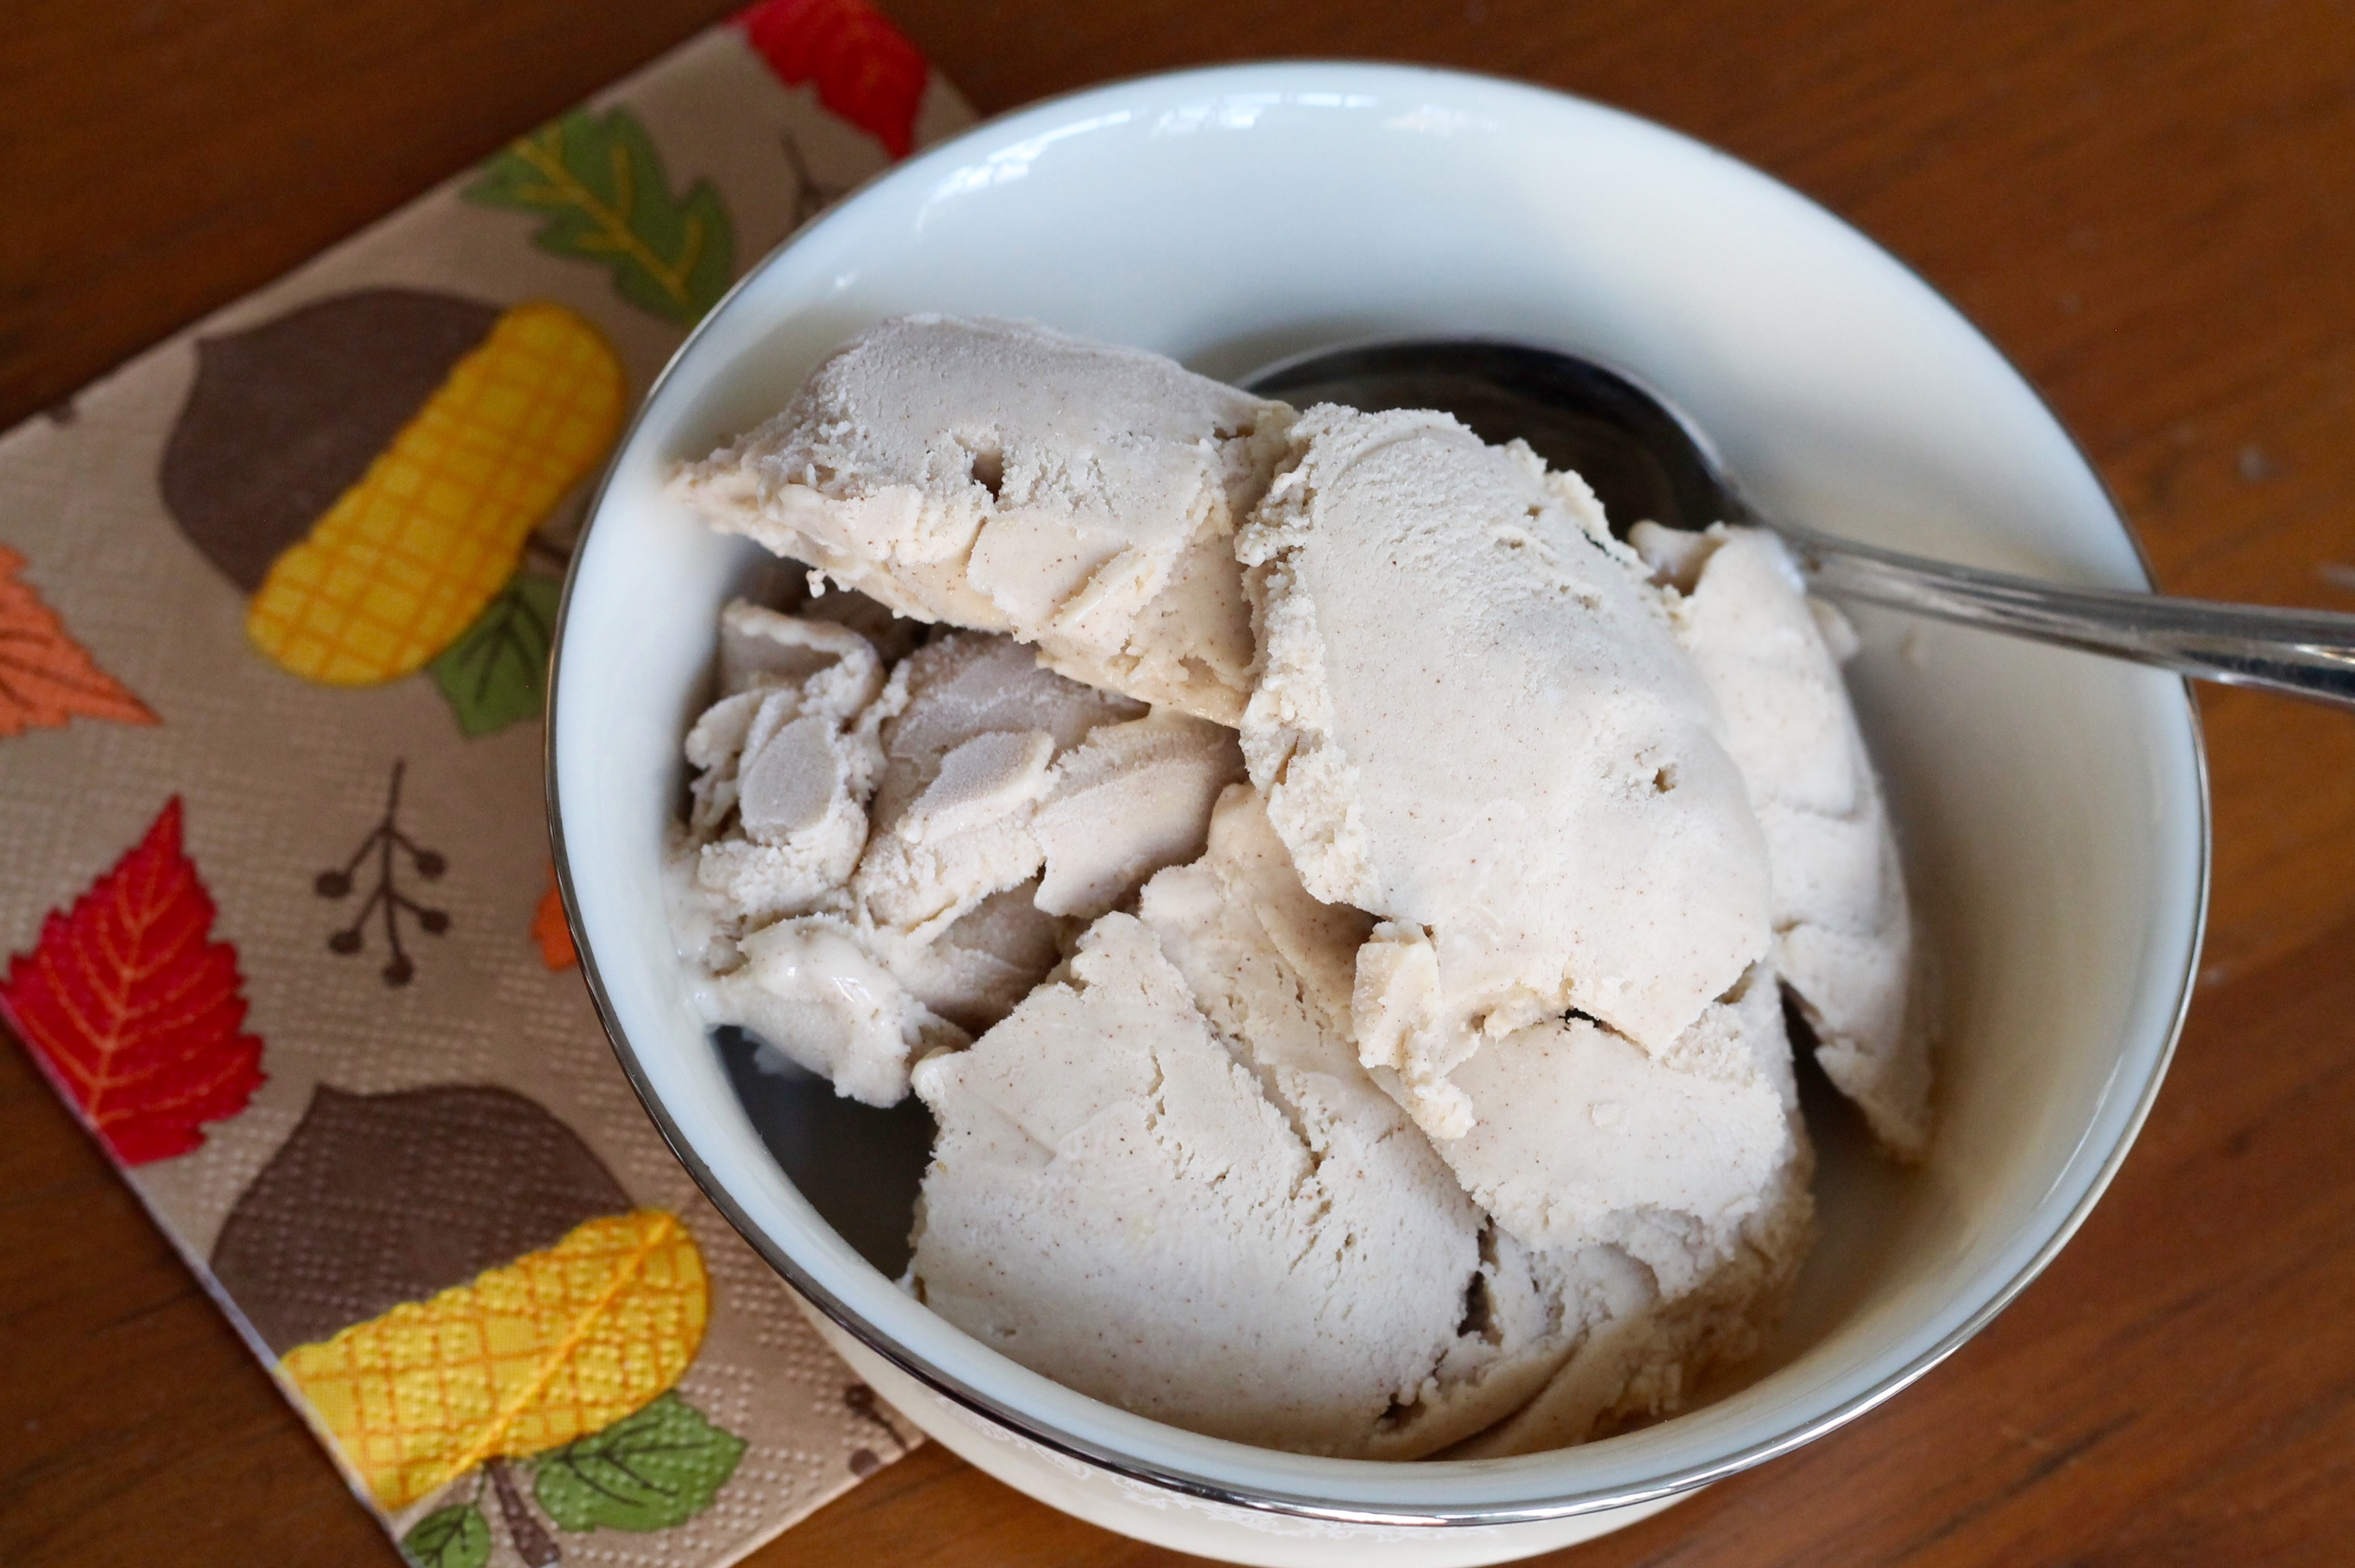 Cinnamon ice cream - The 2 Seasons